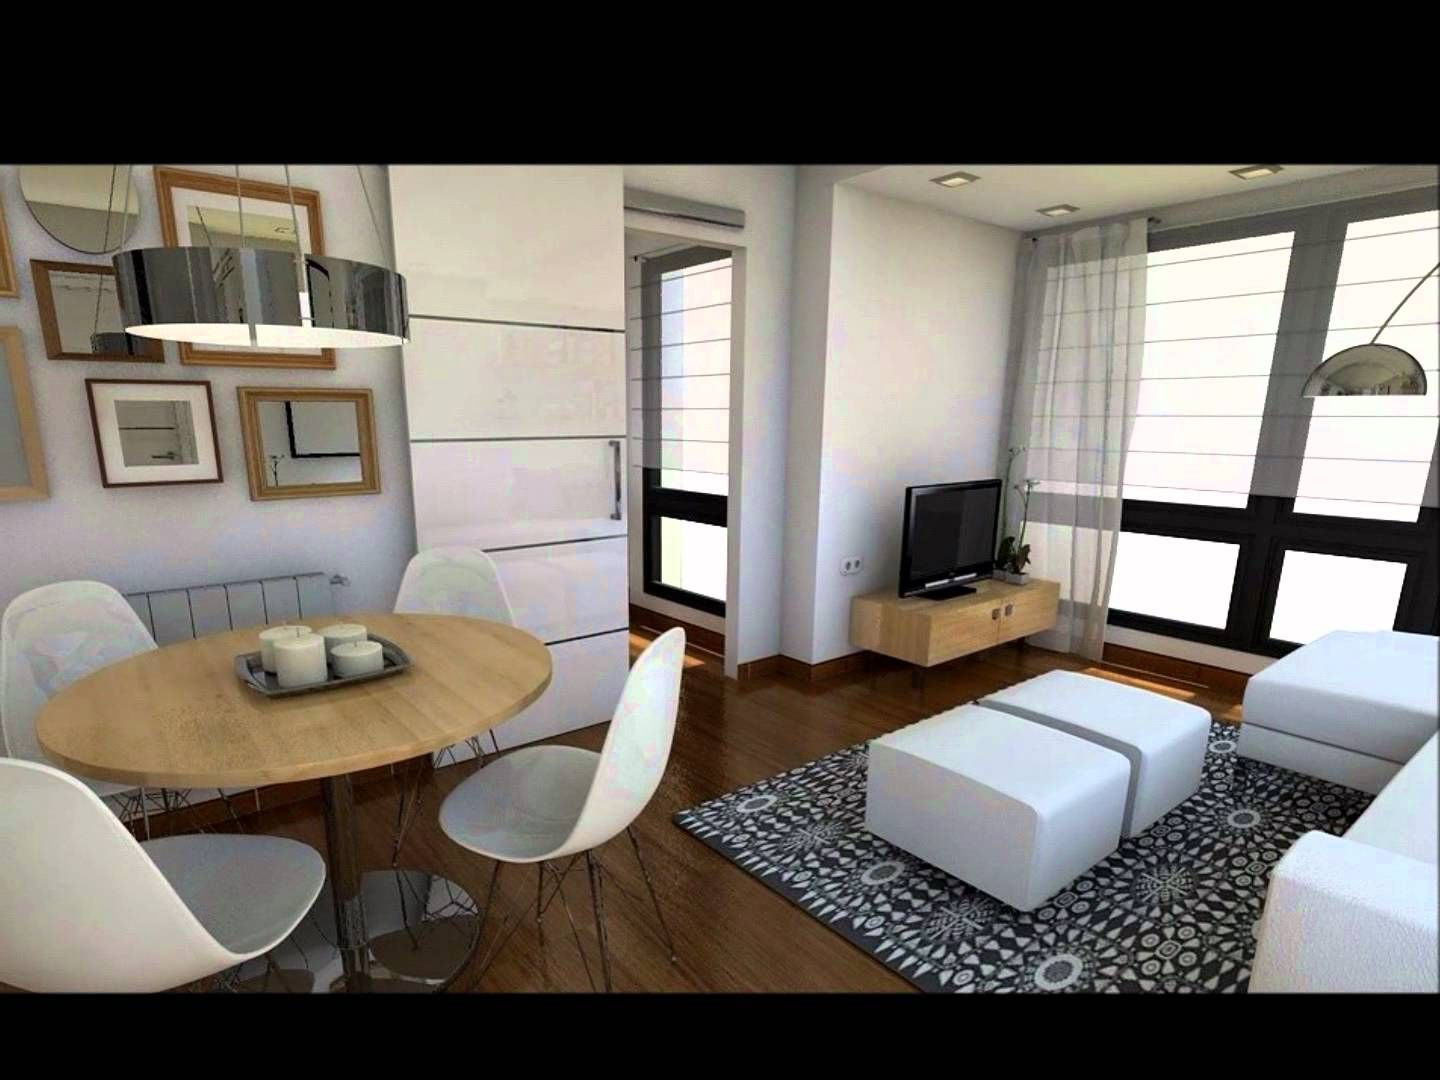 Dise o interior apartamento 40 m2 decoracion for Interiores de departamentos pequenos